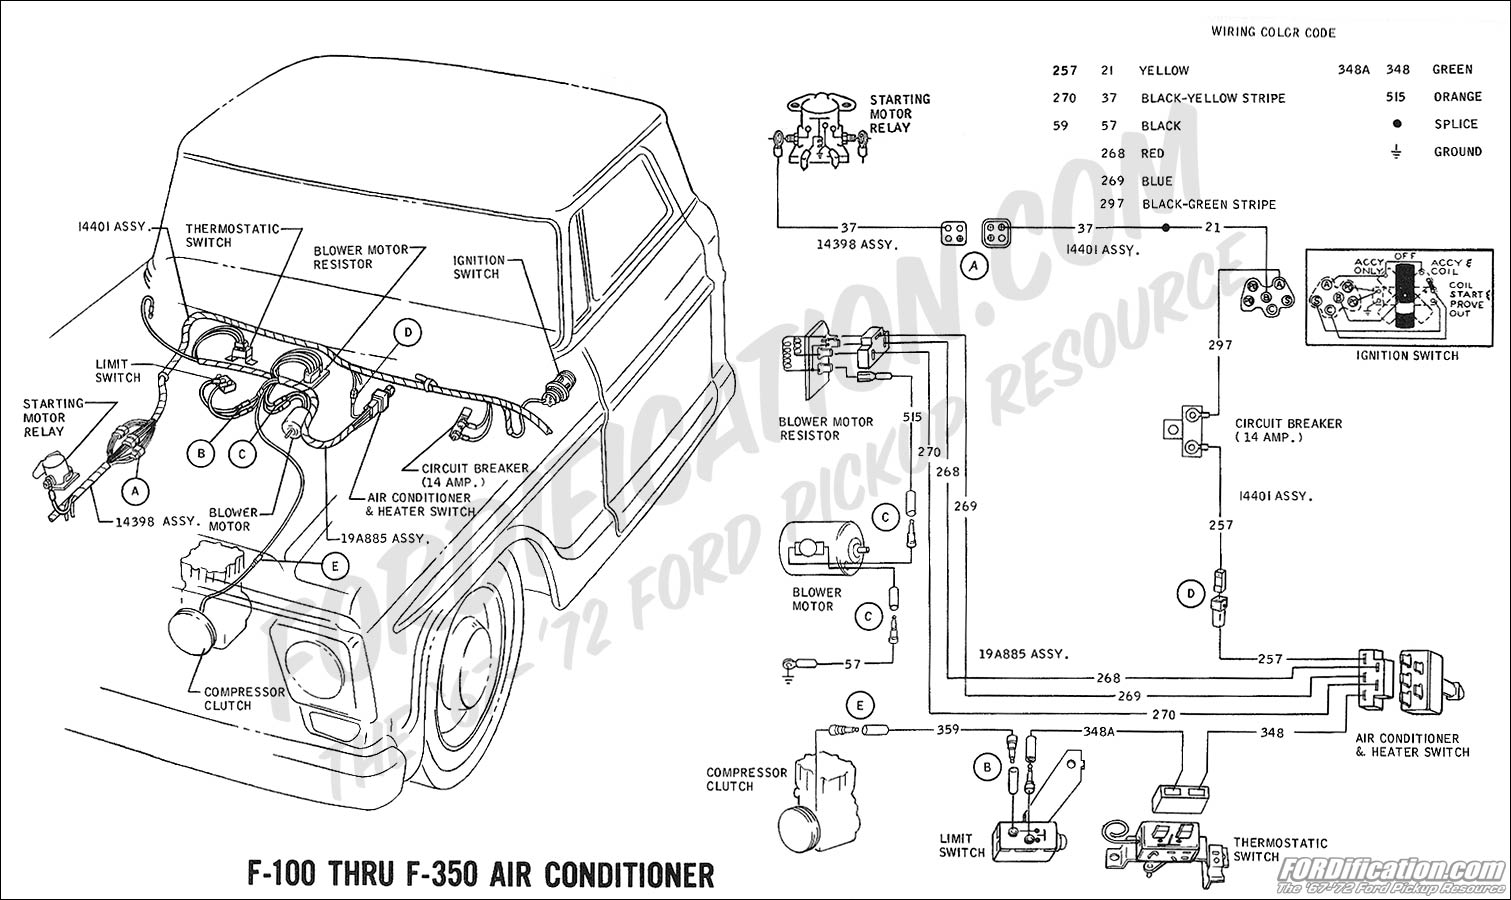 1969 F-100 thru F-350 air conditioner